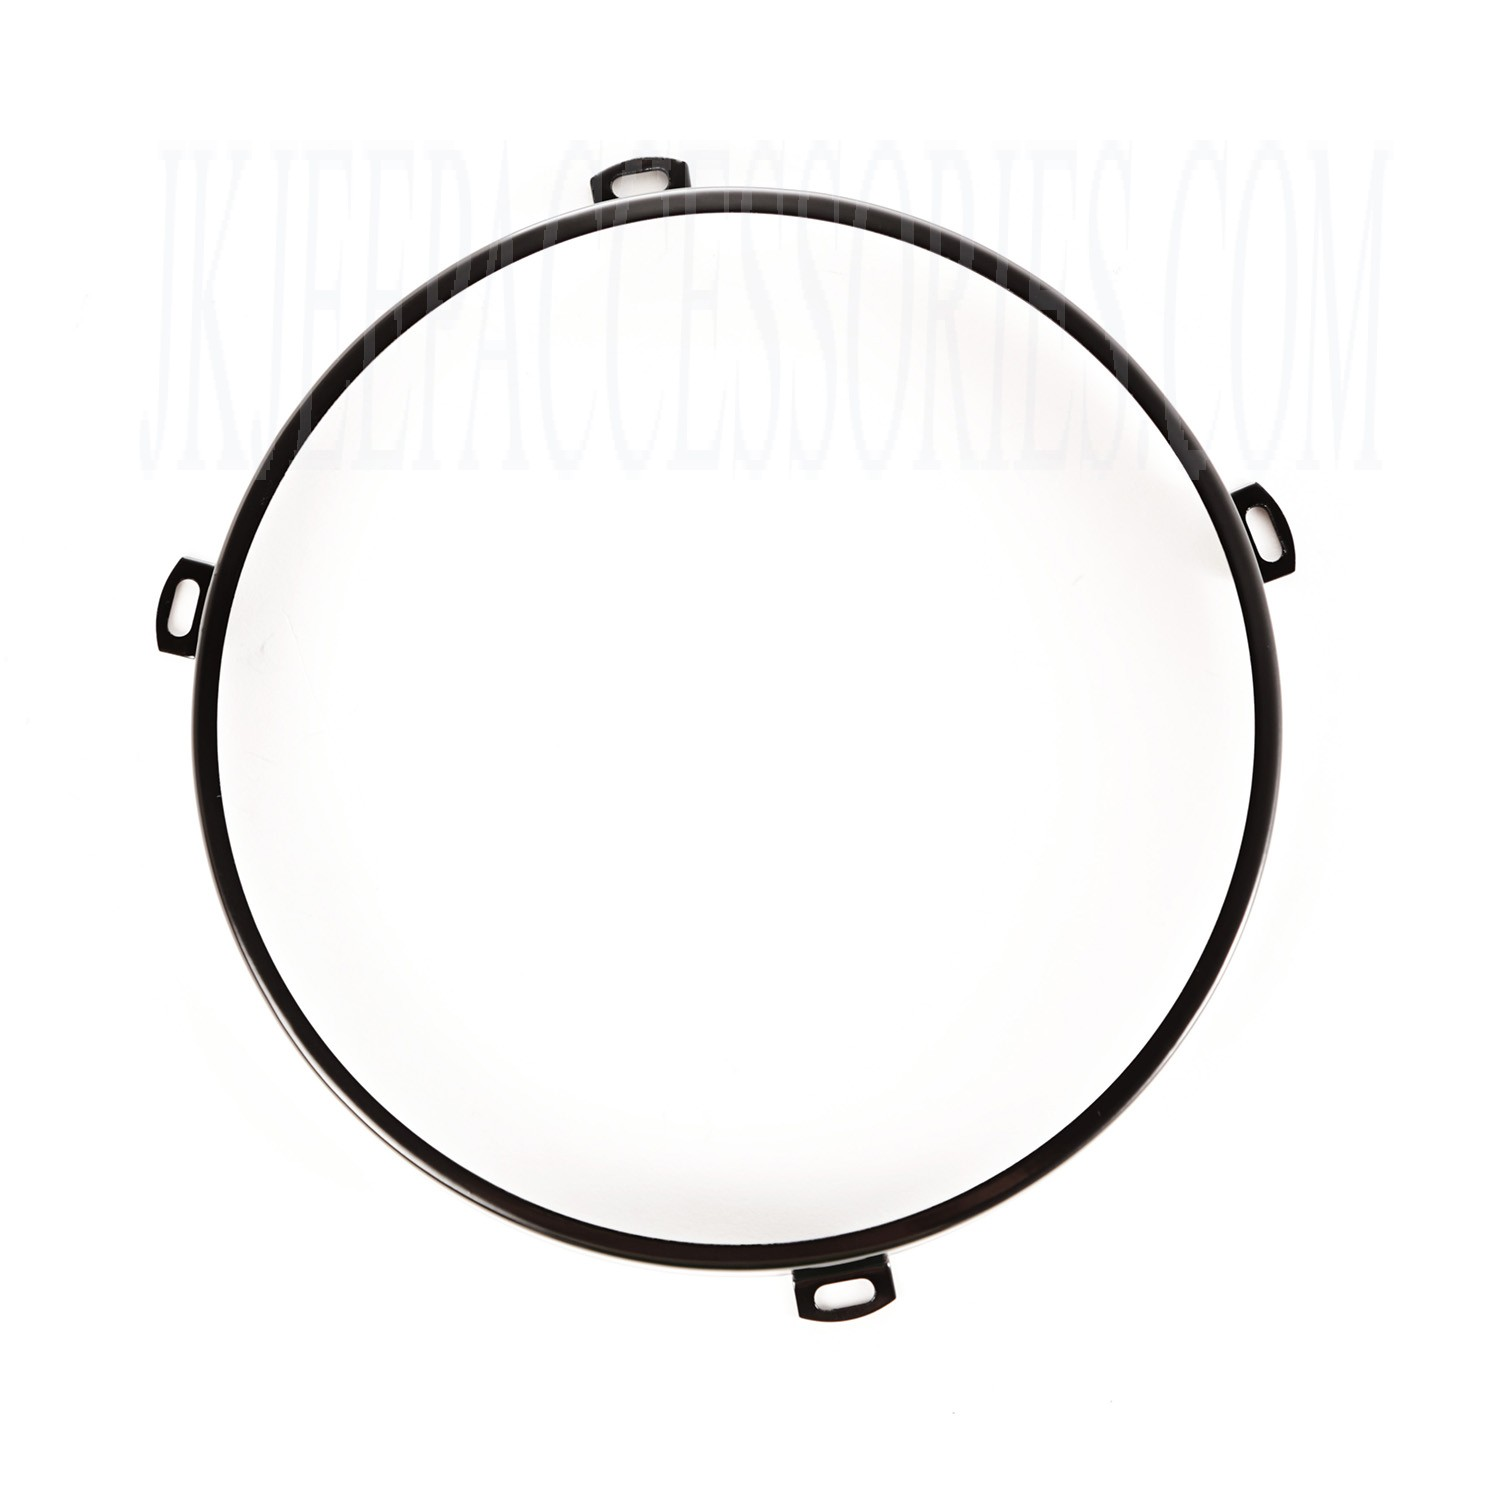 Headlight Retaining Ring 07 16 Wrangler Jk Jku